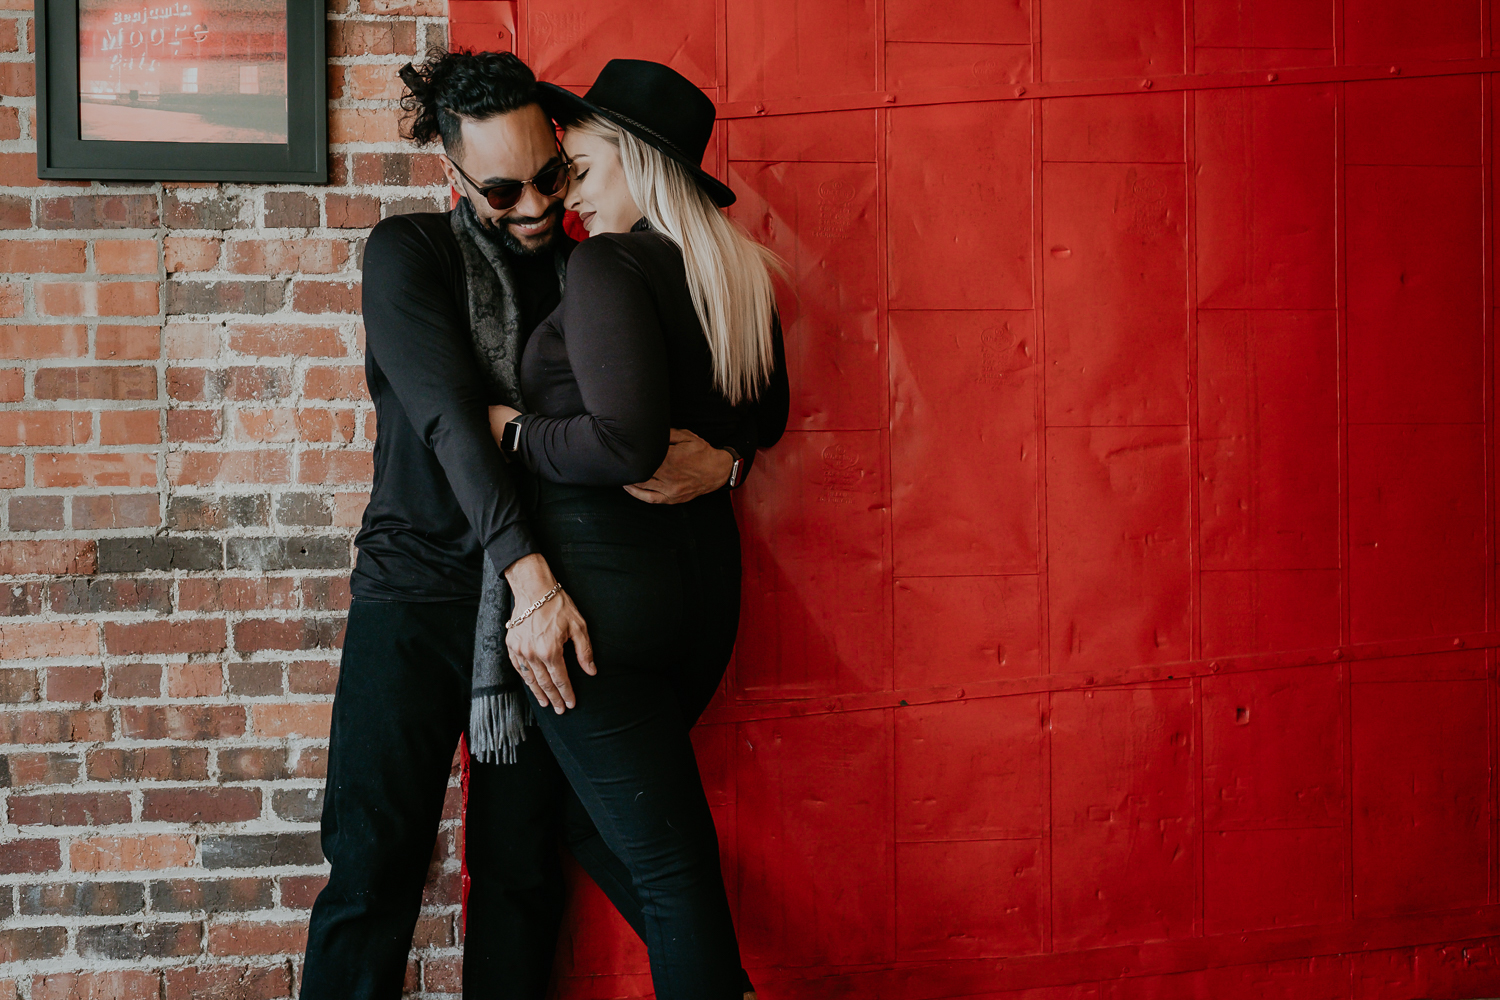 Tessa and Ector hugging in front of red wall wearing all black